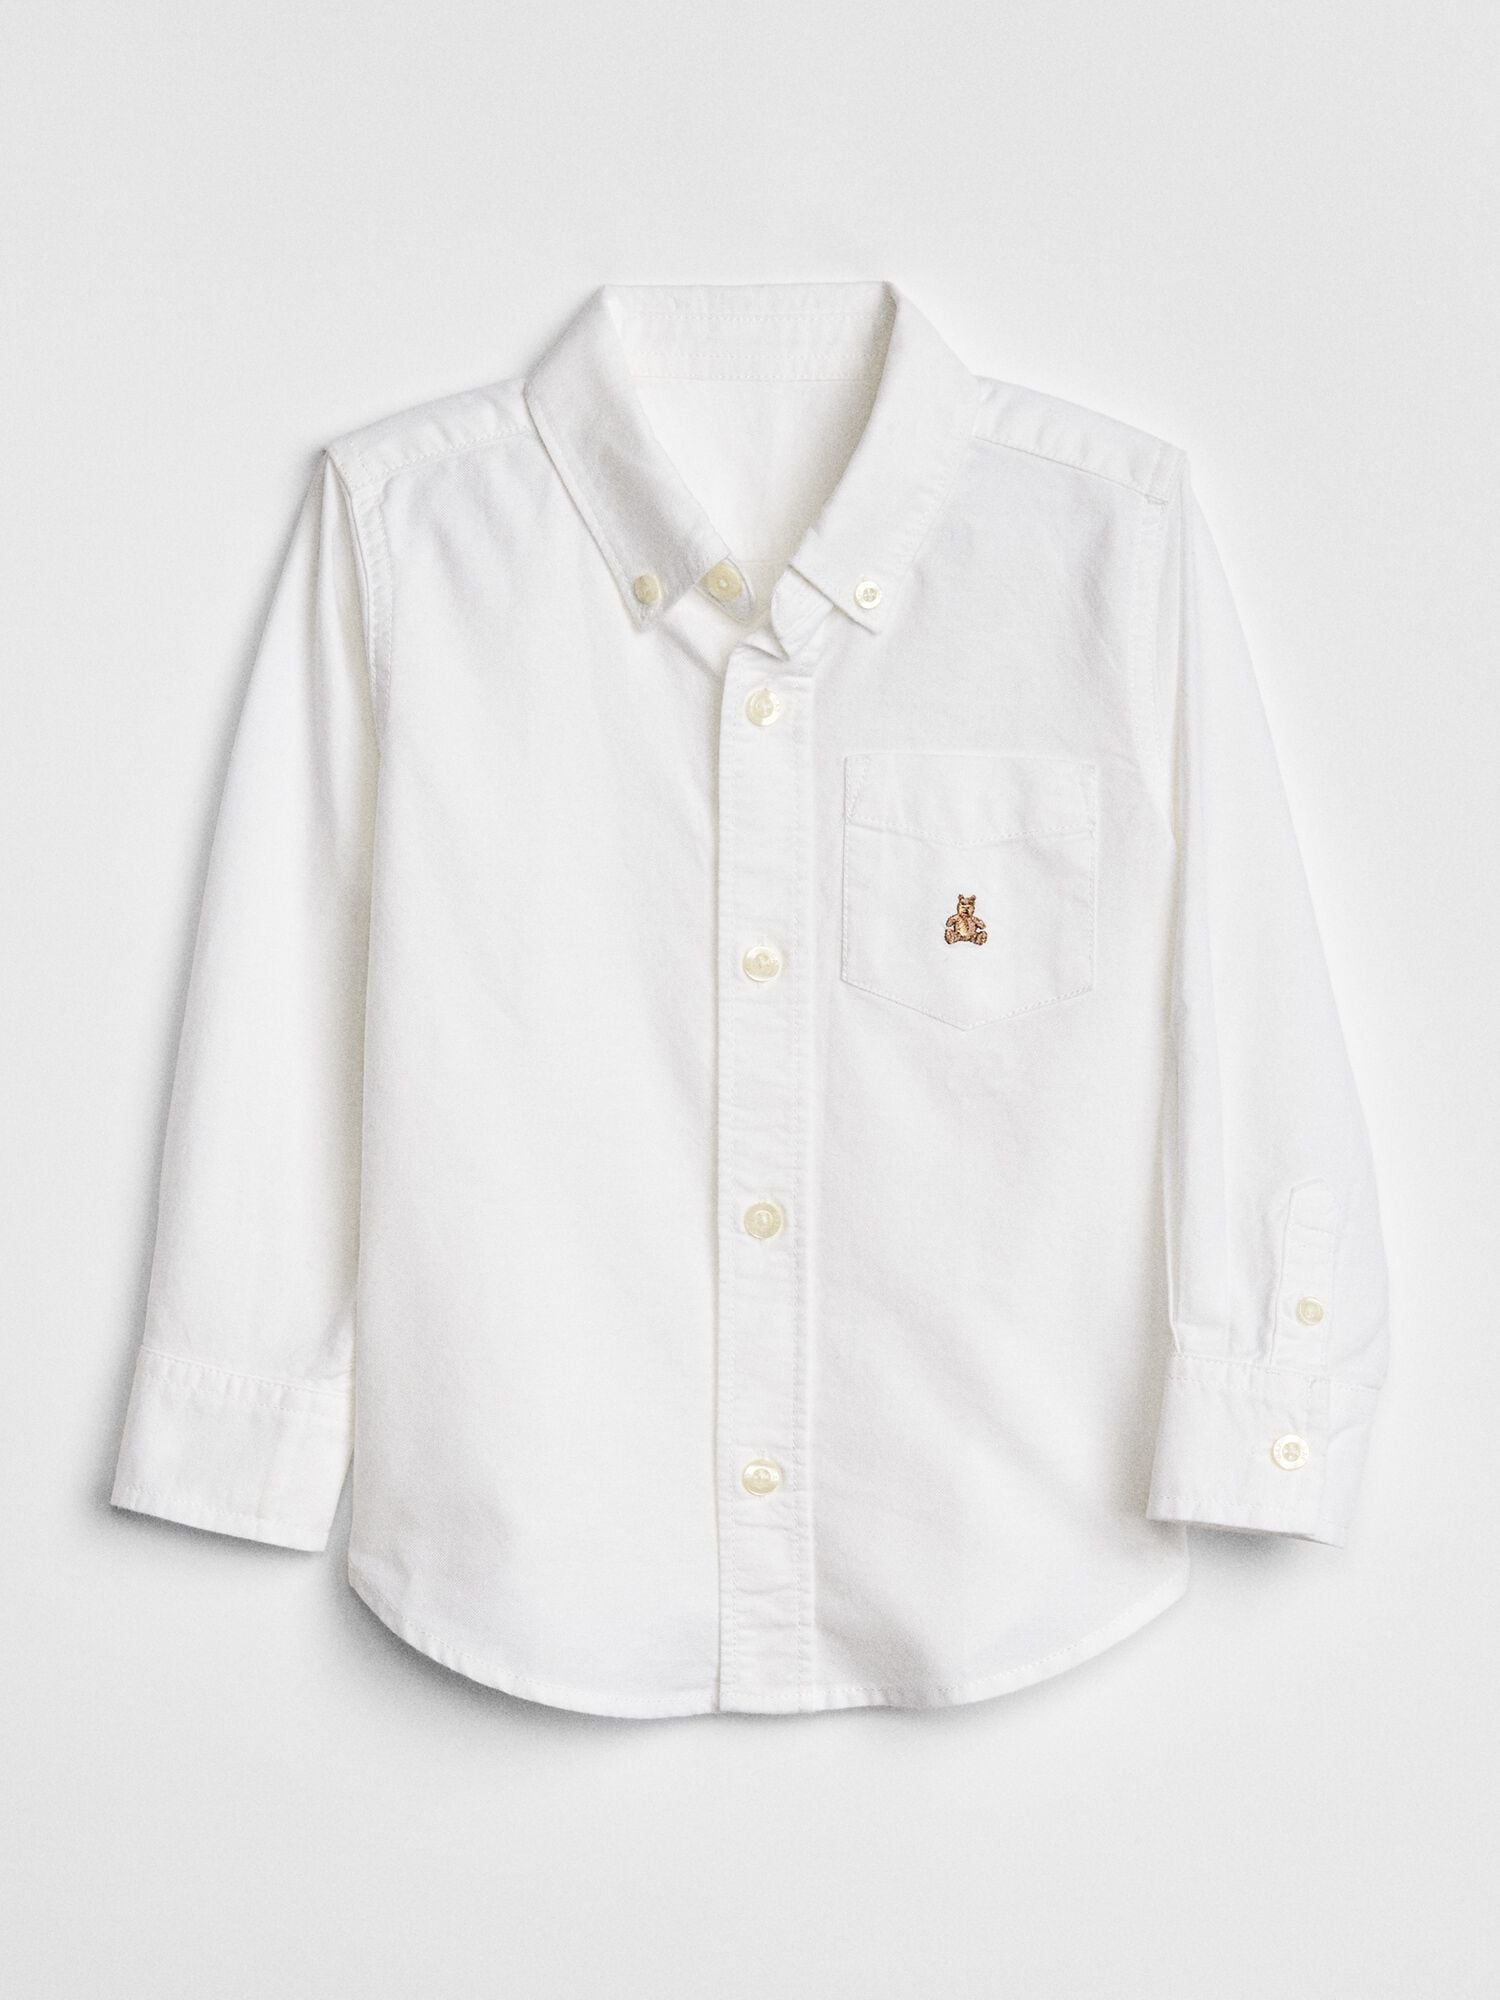 dff8477b1f1 White Shirt Button Collar Uk ✓ Labzada T Shirt